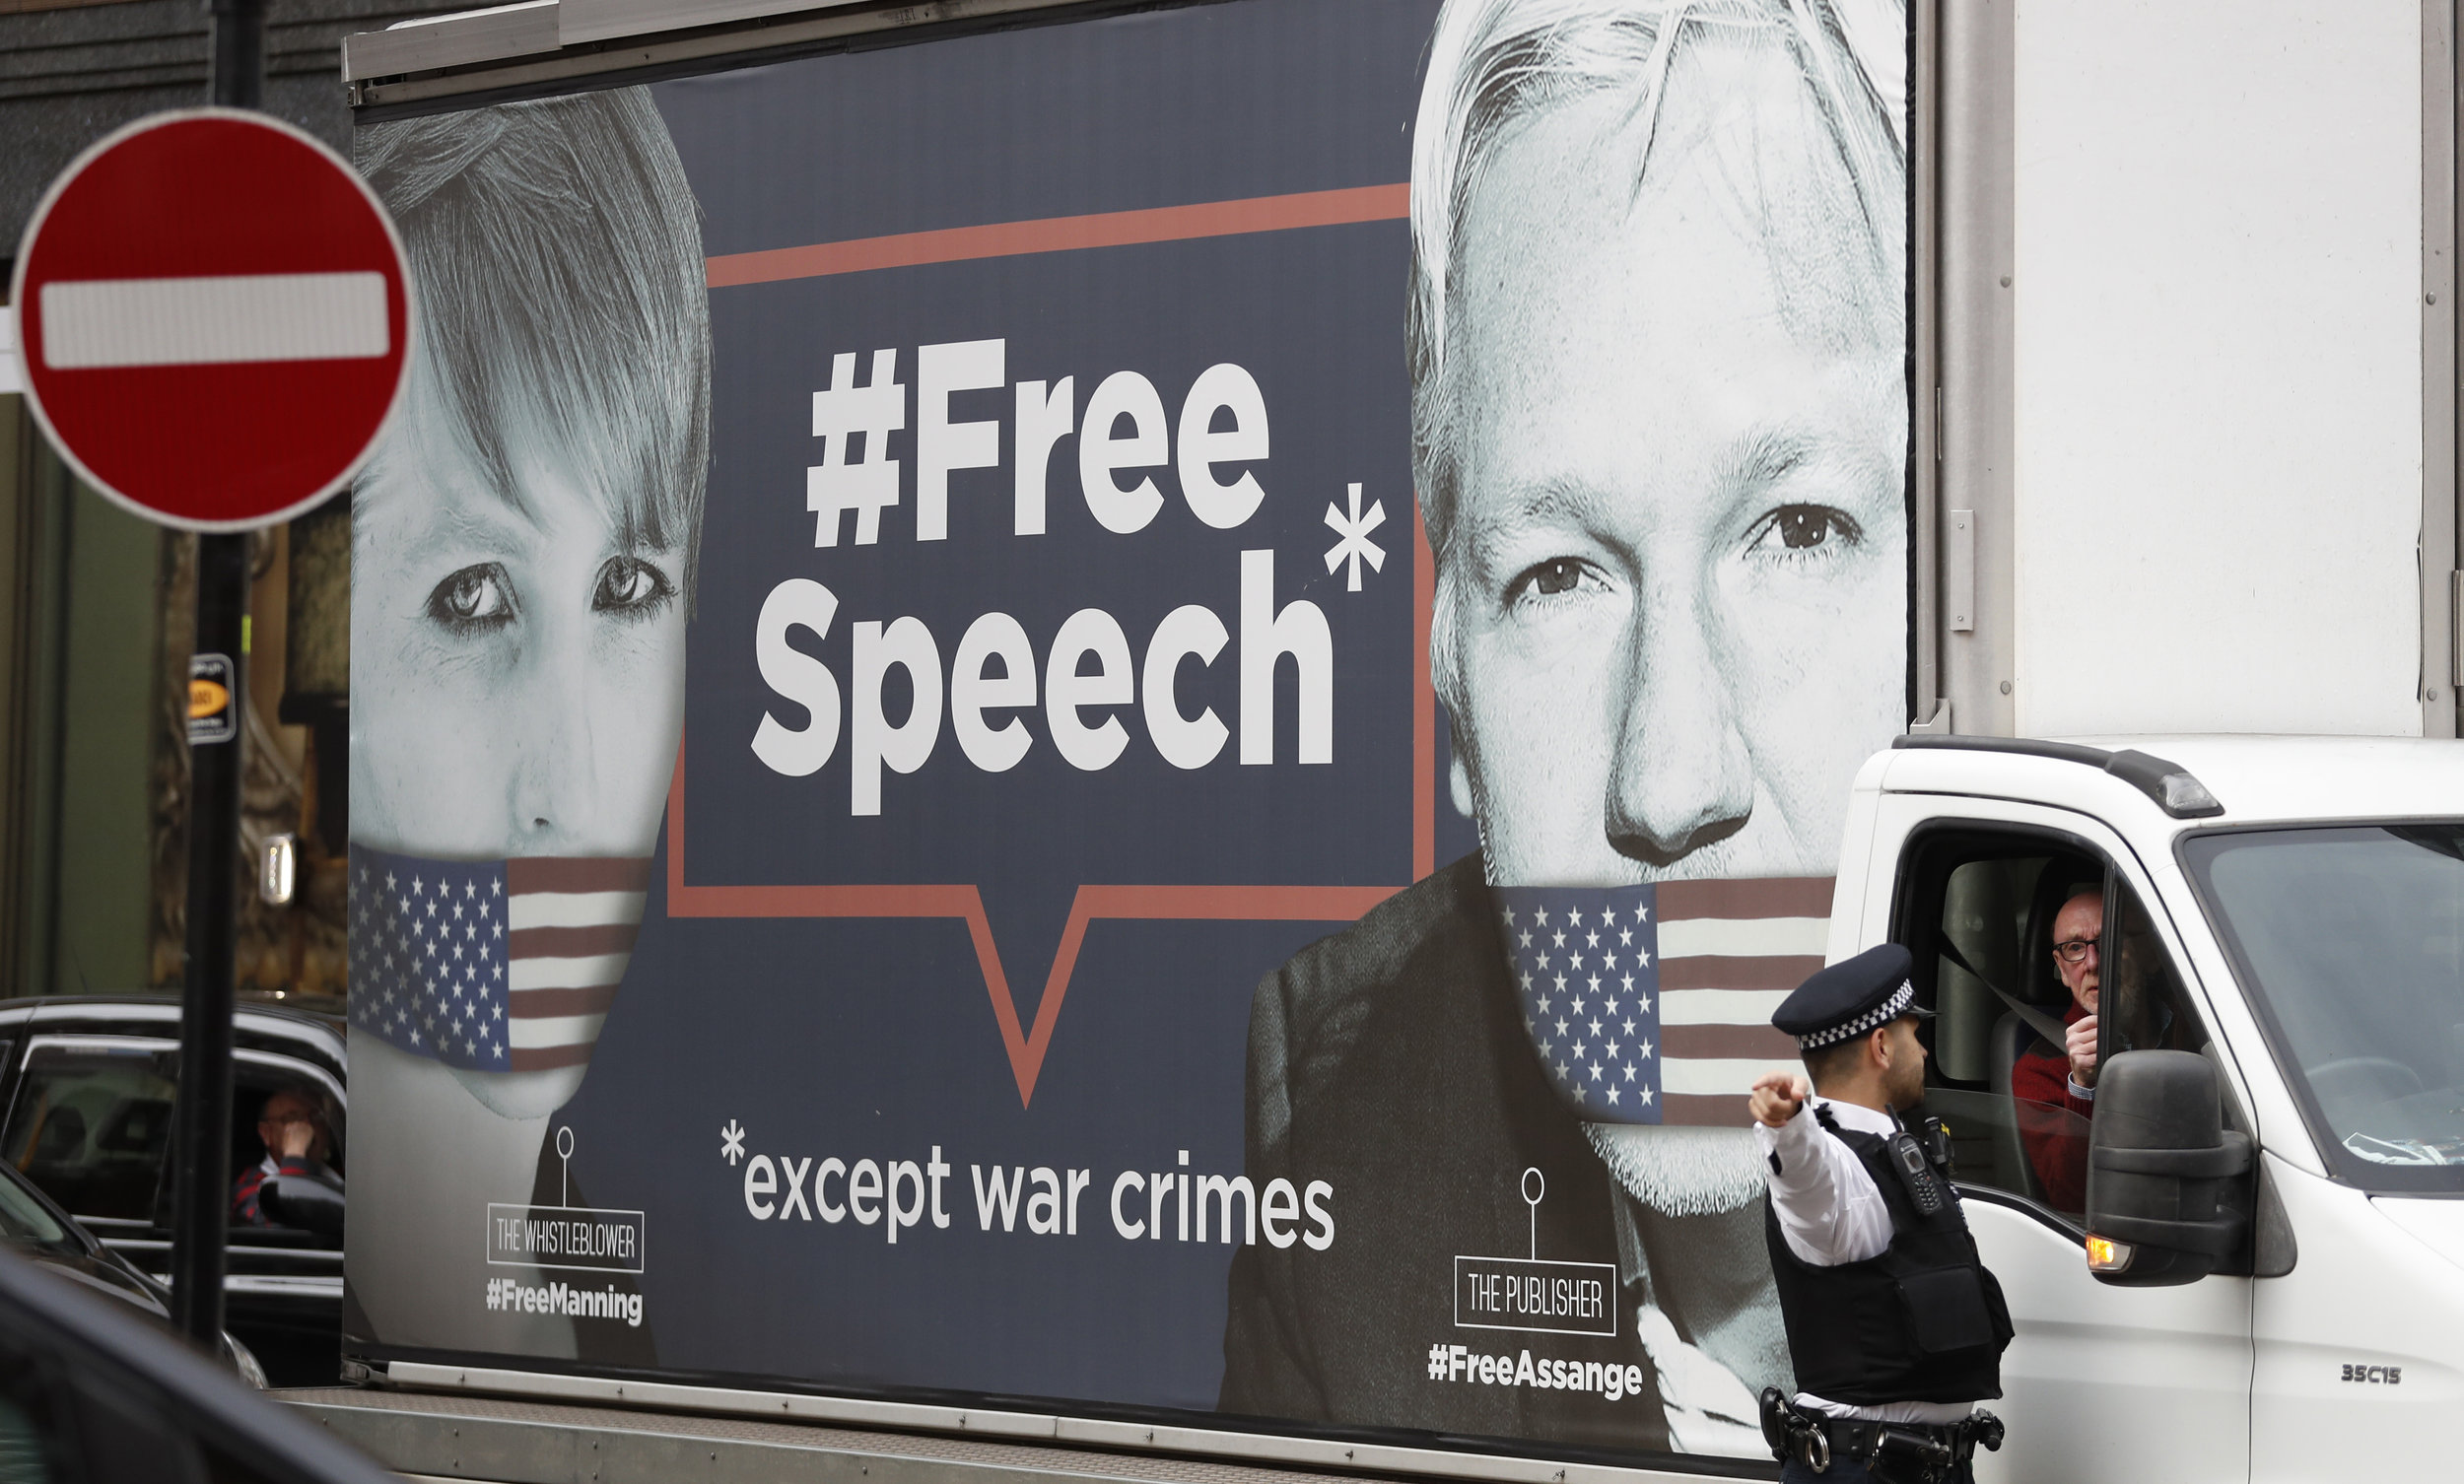 "A policeman directs a van with a 'Free Speech' placard and the images of Wikileaks founder Julian Assange and whistleblower Chelsea Manning on its side, near the Ecuadorian Embassy, in London, Friday, April 5, 2019. Assange has been hold out since in the embassy since 2012. A senior Ecuadorian official said no decision has been made to expel Julian Assange from the country's London embassy despite tweets from Wikileaks that sources had told it he could be kicked out within ""hours to days"" on Friday. (AP Photo/Alastair Grant)"